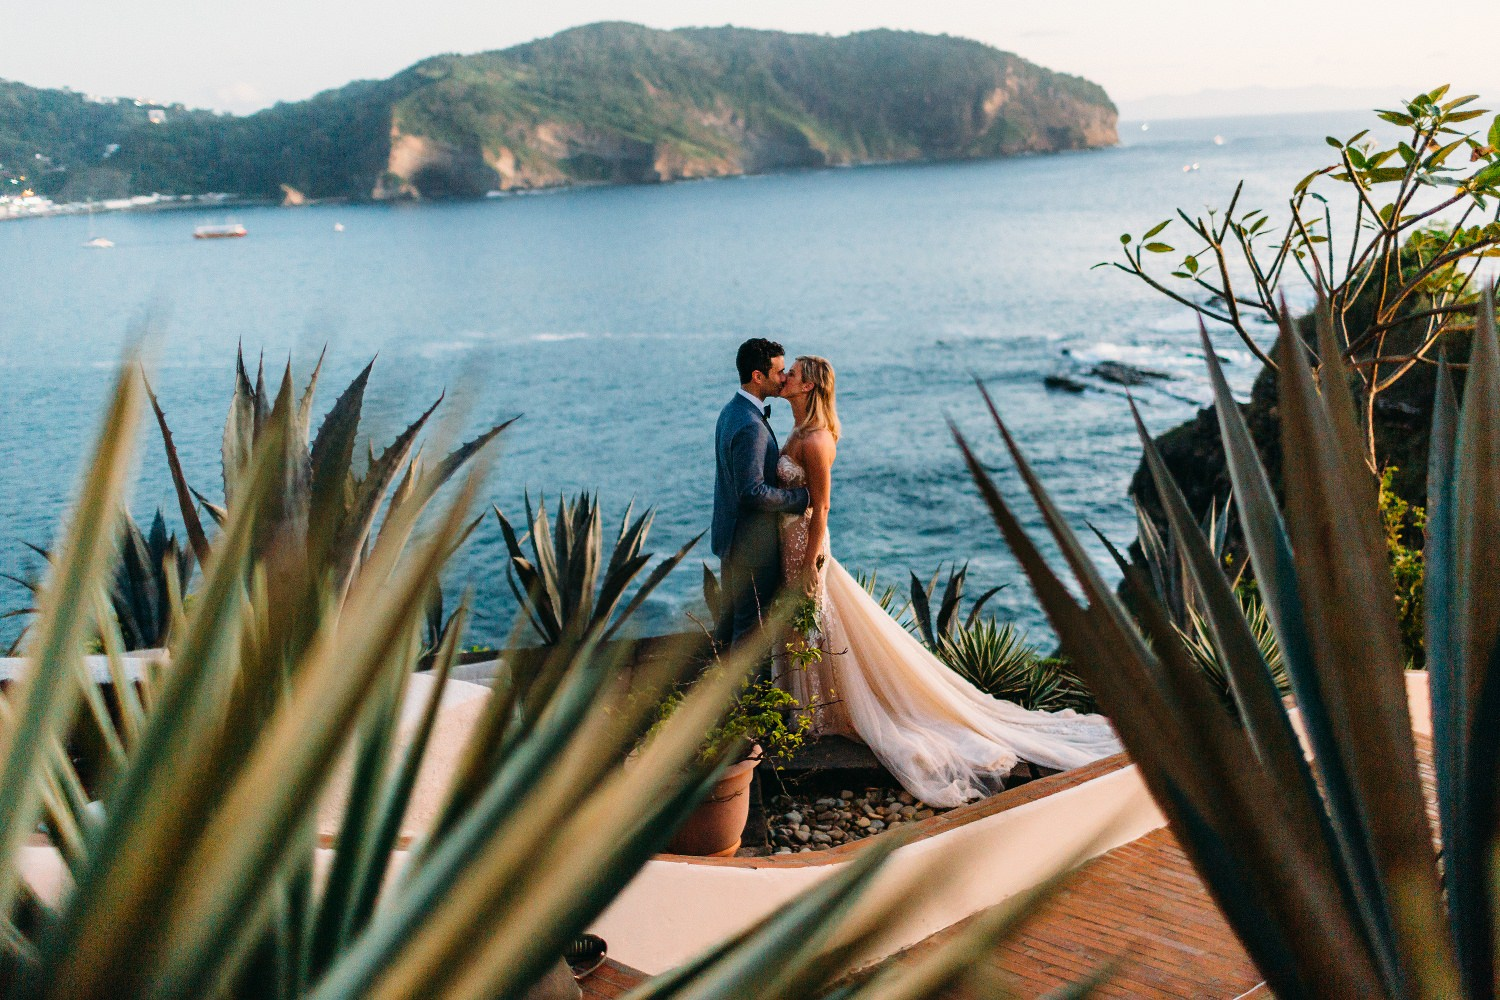 Destination wedding photography in Nicaragua and Costa Rica. Best wedding venue on the beach with amazing view of the San Juan Bay. Christian & Dana Wedding